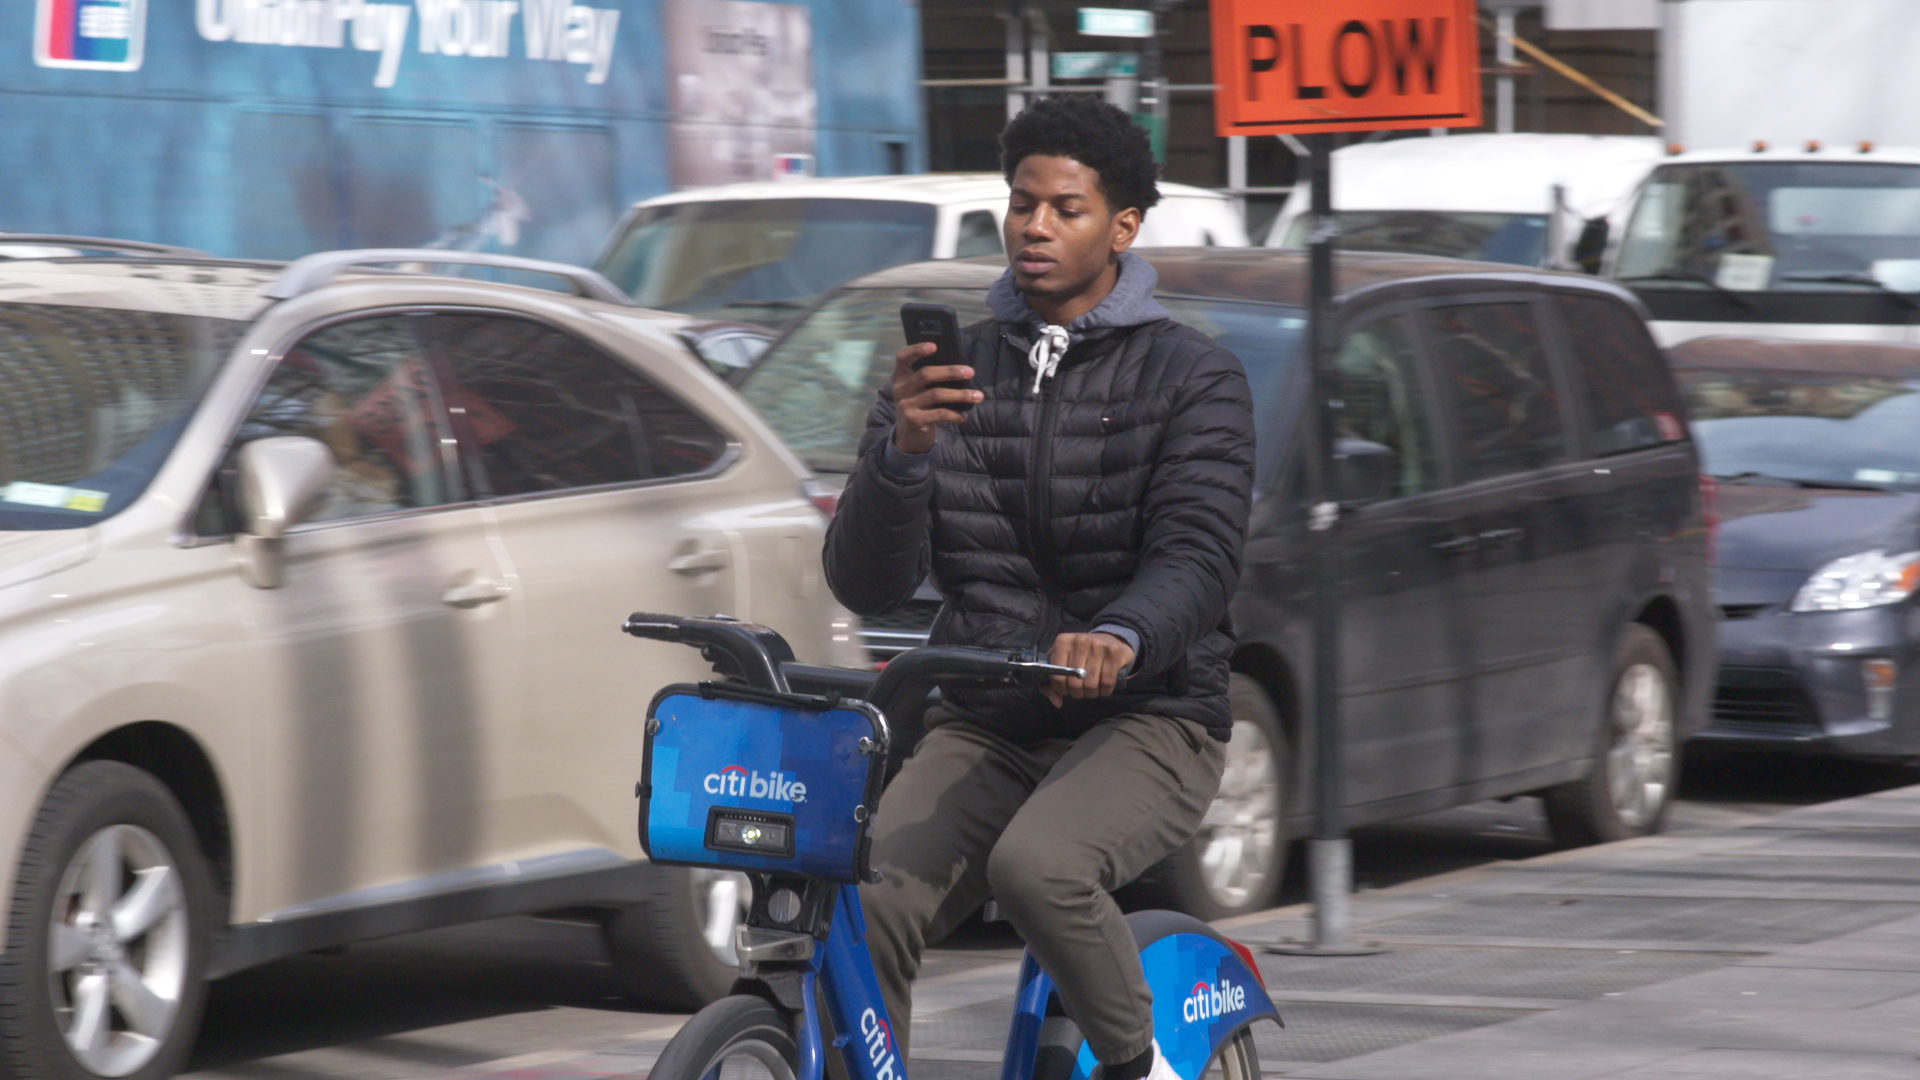 phone-on-bike.jpg